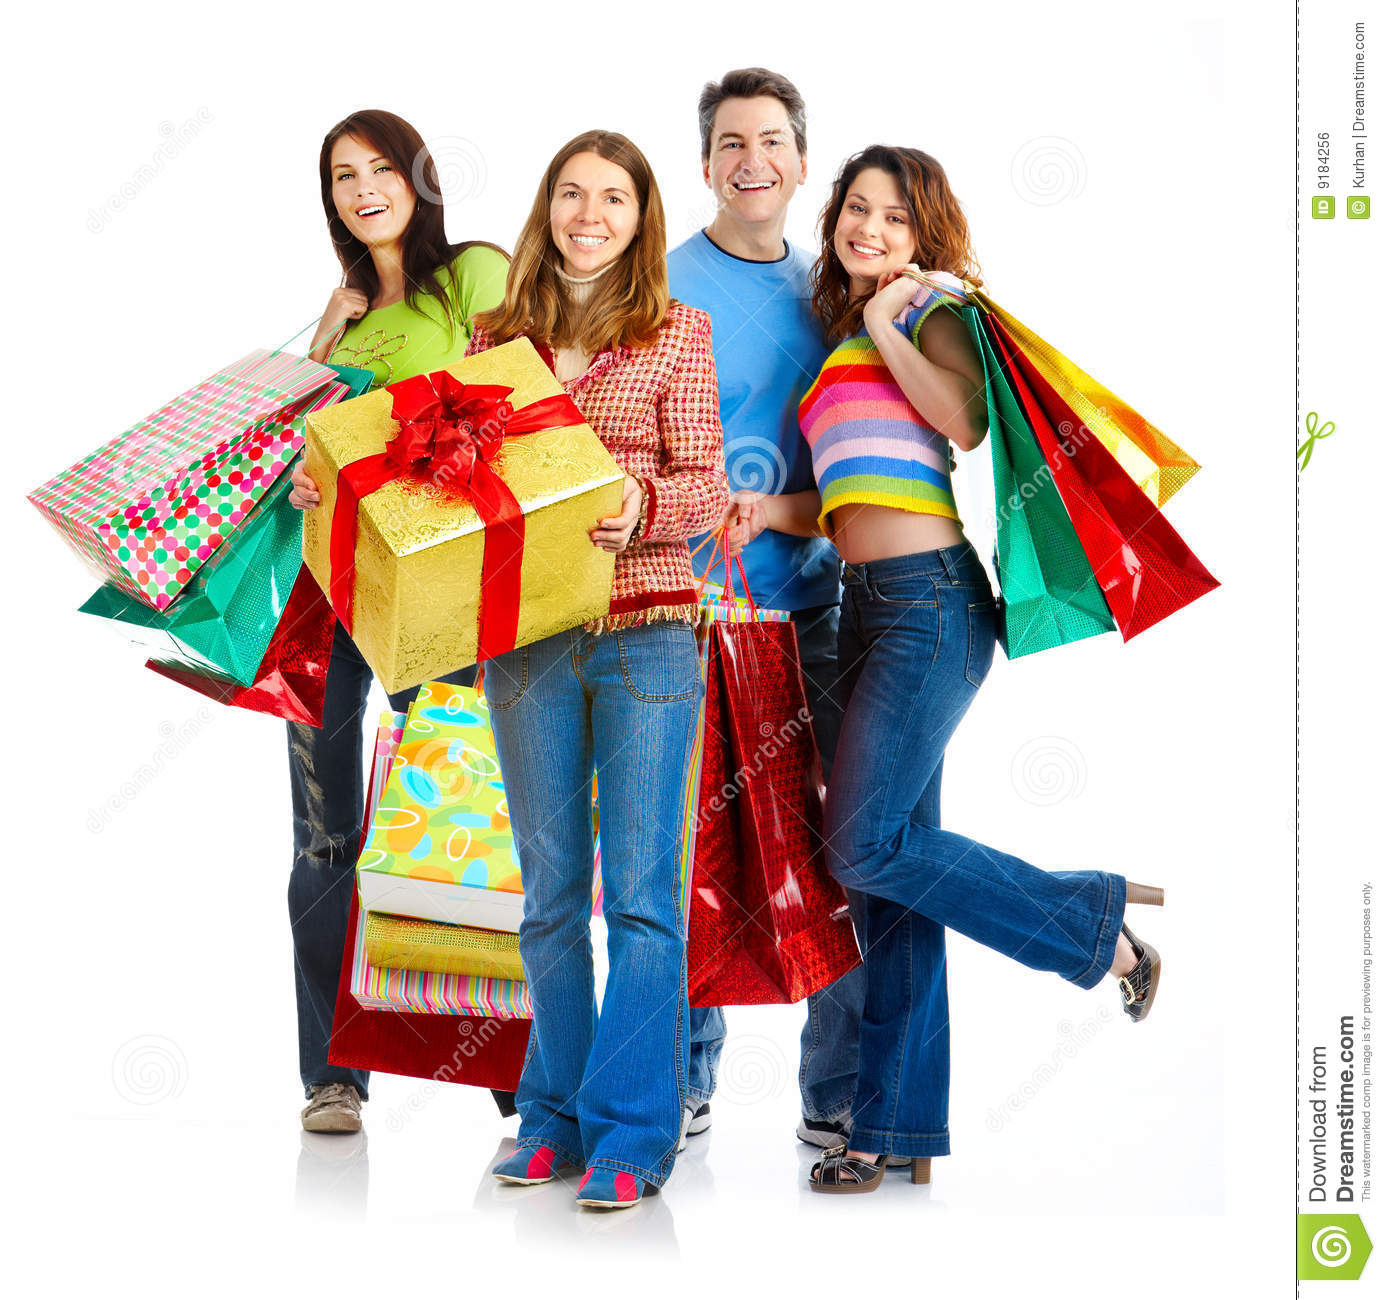 Happy shopping people.